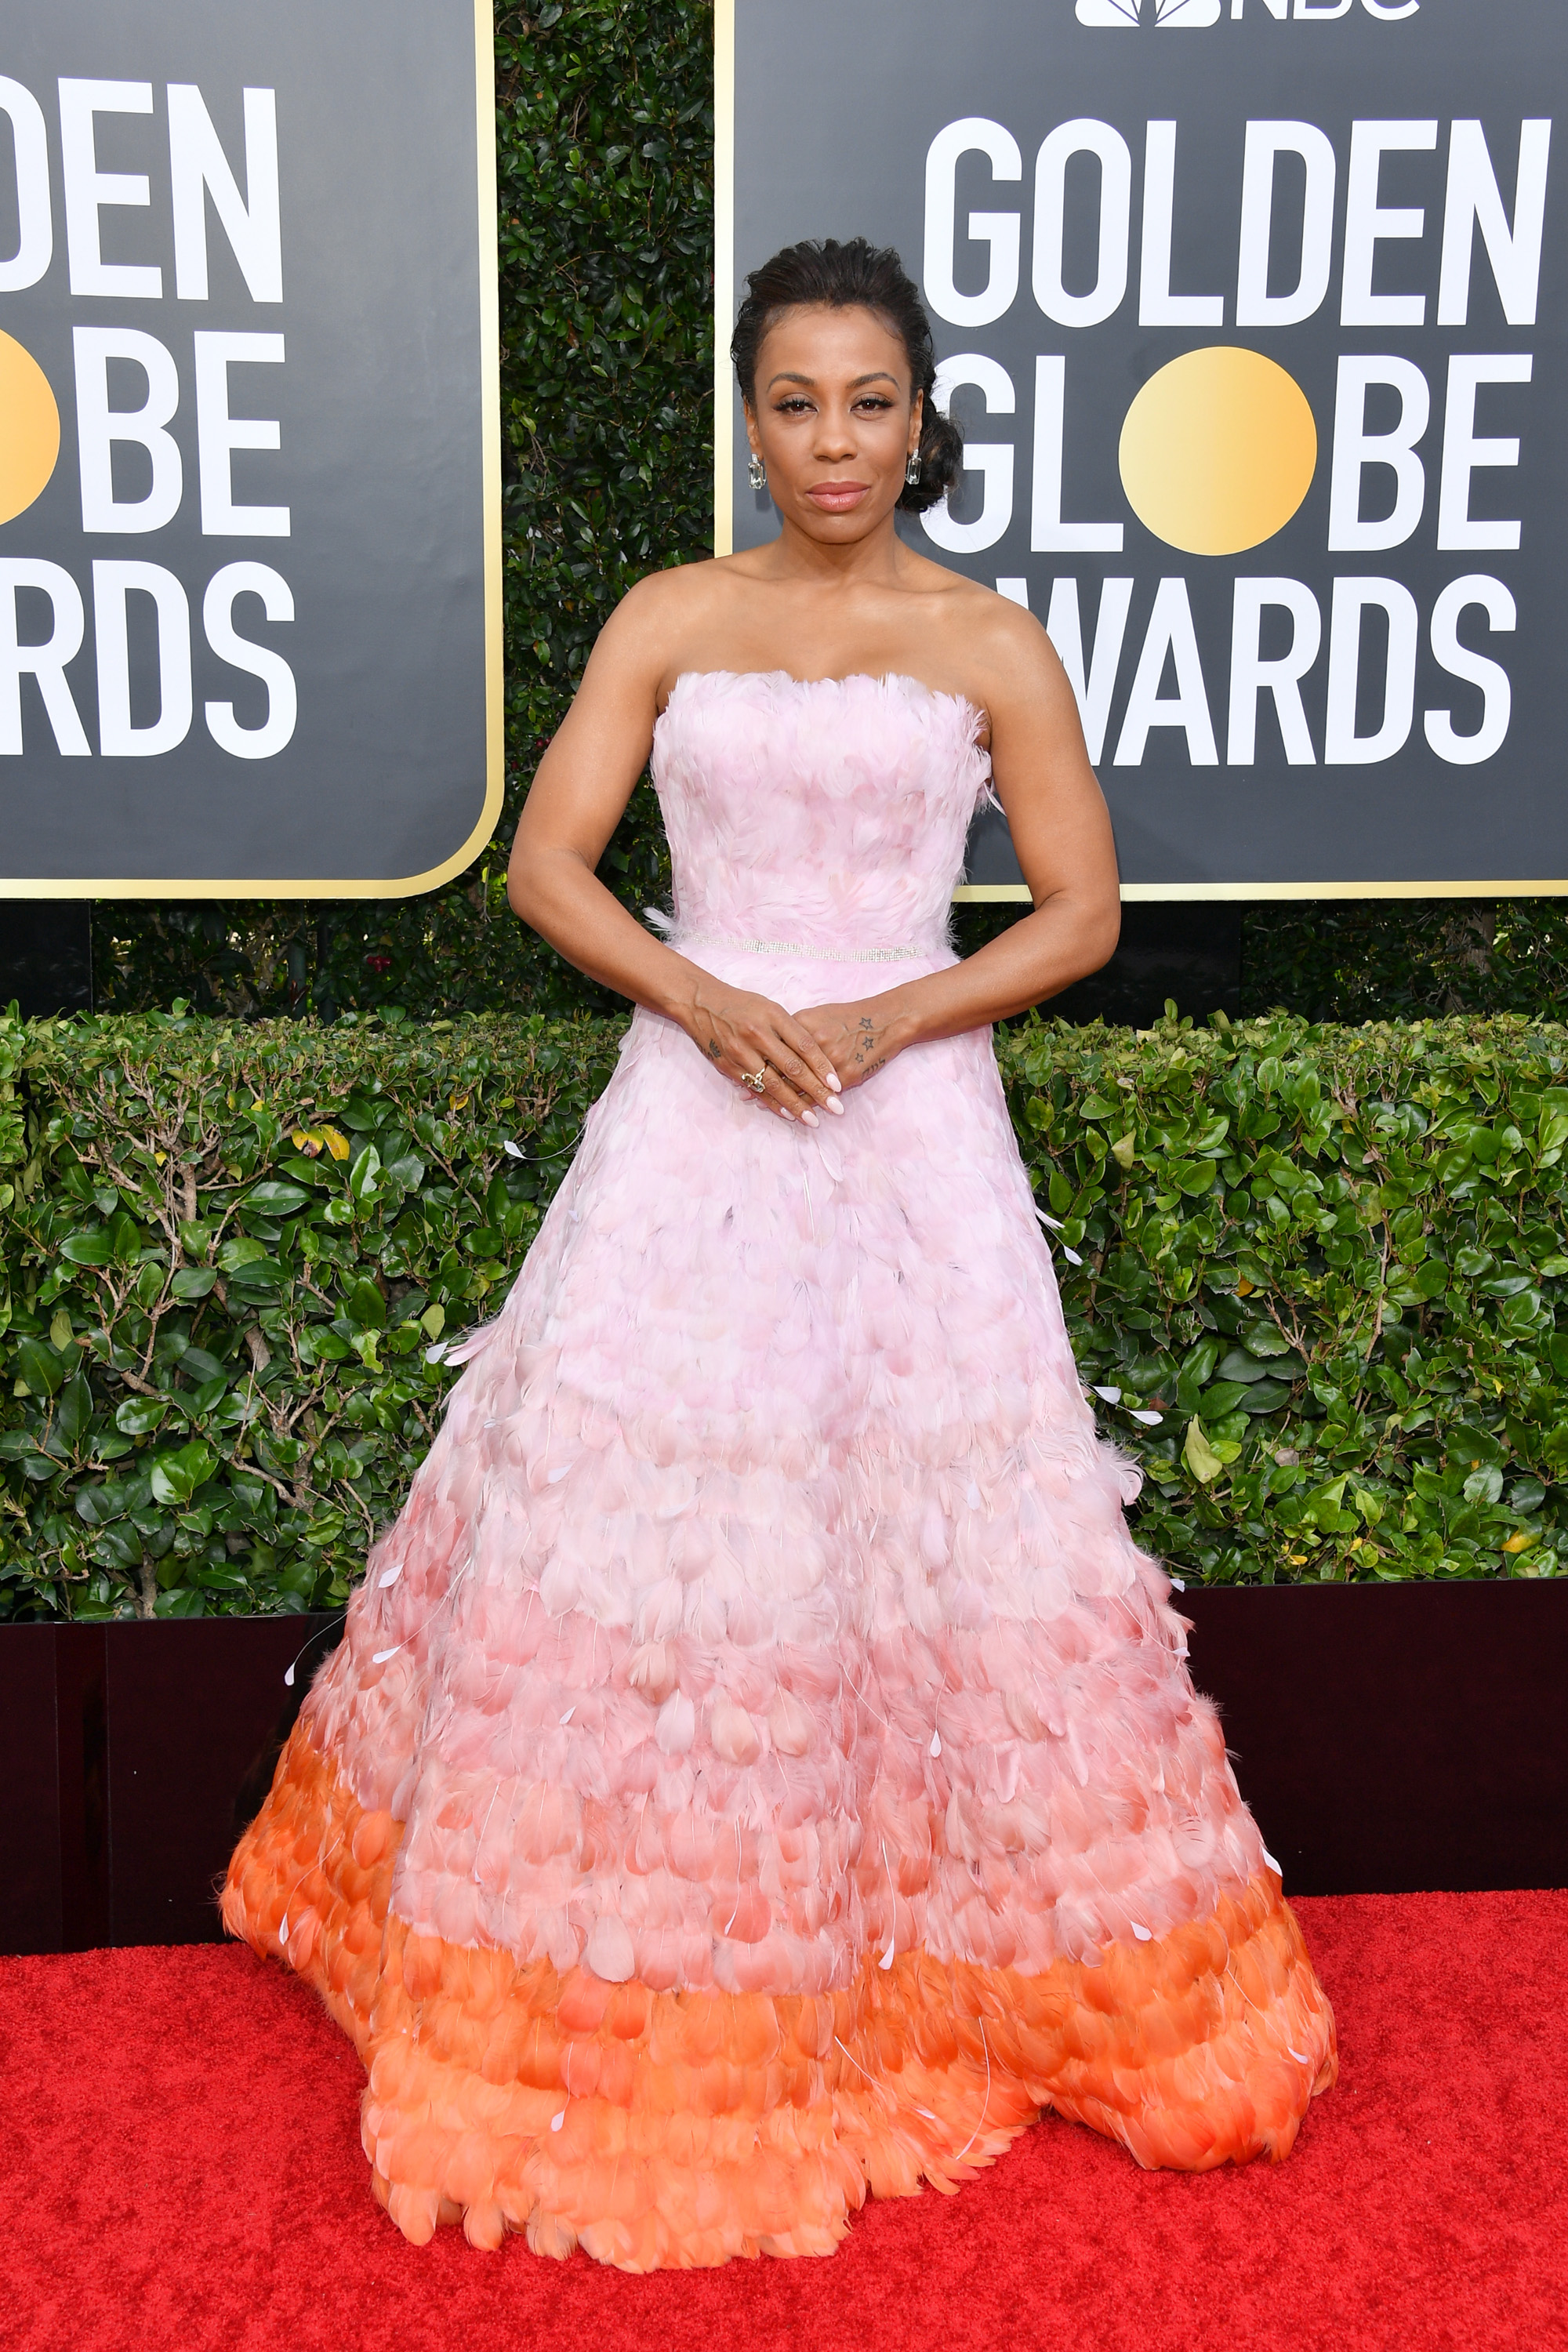 BEVERLY HILLS, CALIFORNIA - JANUARY 05: Karen Pittman attends the 77th Annual Golden Globe Awards at The Beverly Hilton Hotel on January 05, 2020 in Beverly Hills, California. (Photo by George Pimentel/WireImage)